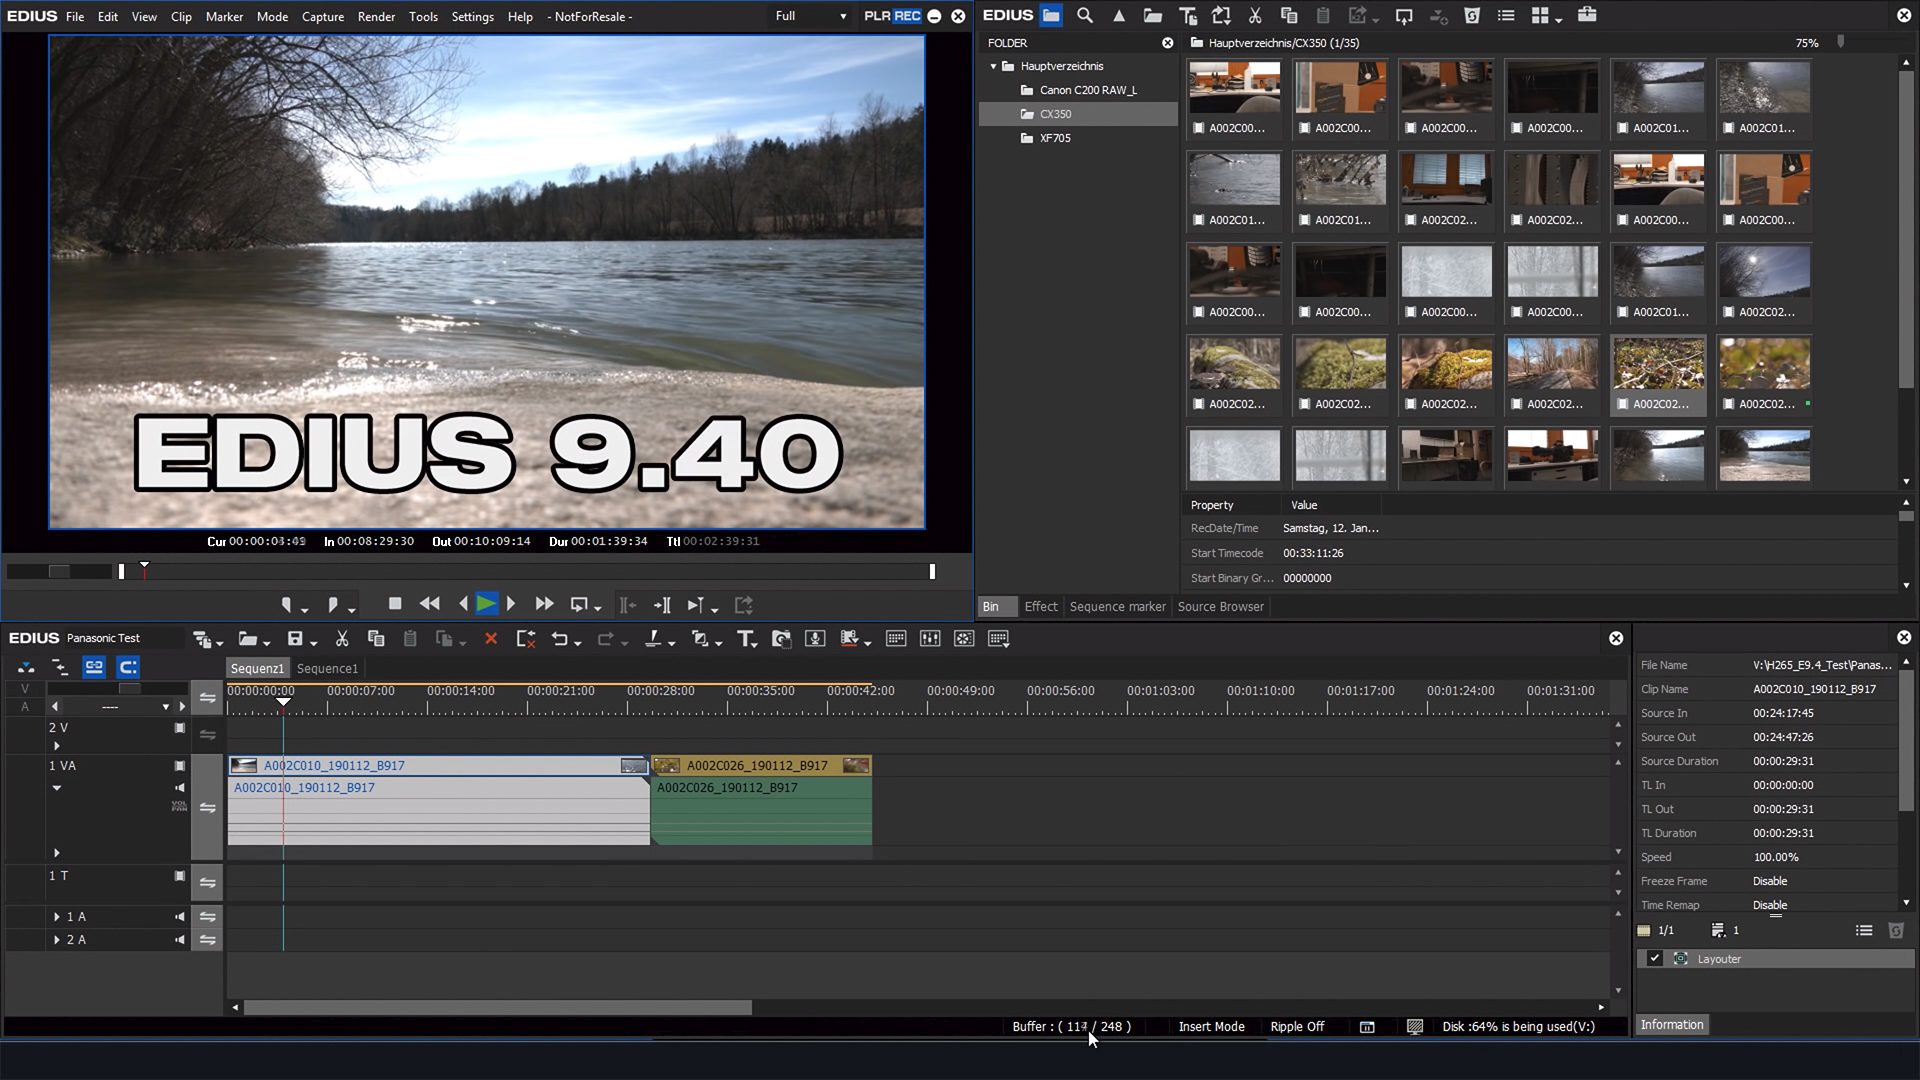 Grass Valley EDIUS 9.40 - including ProRes RAW and Audiosync for Multicam // NAB 2019